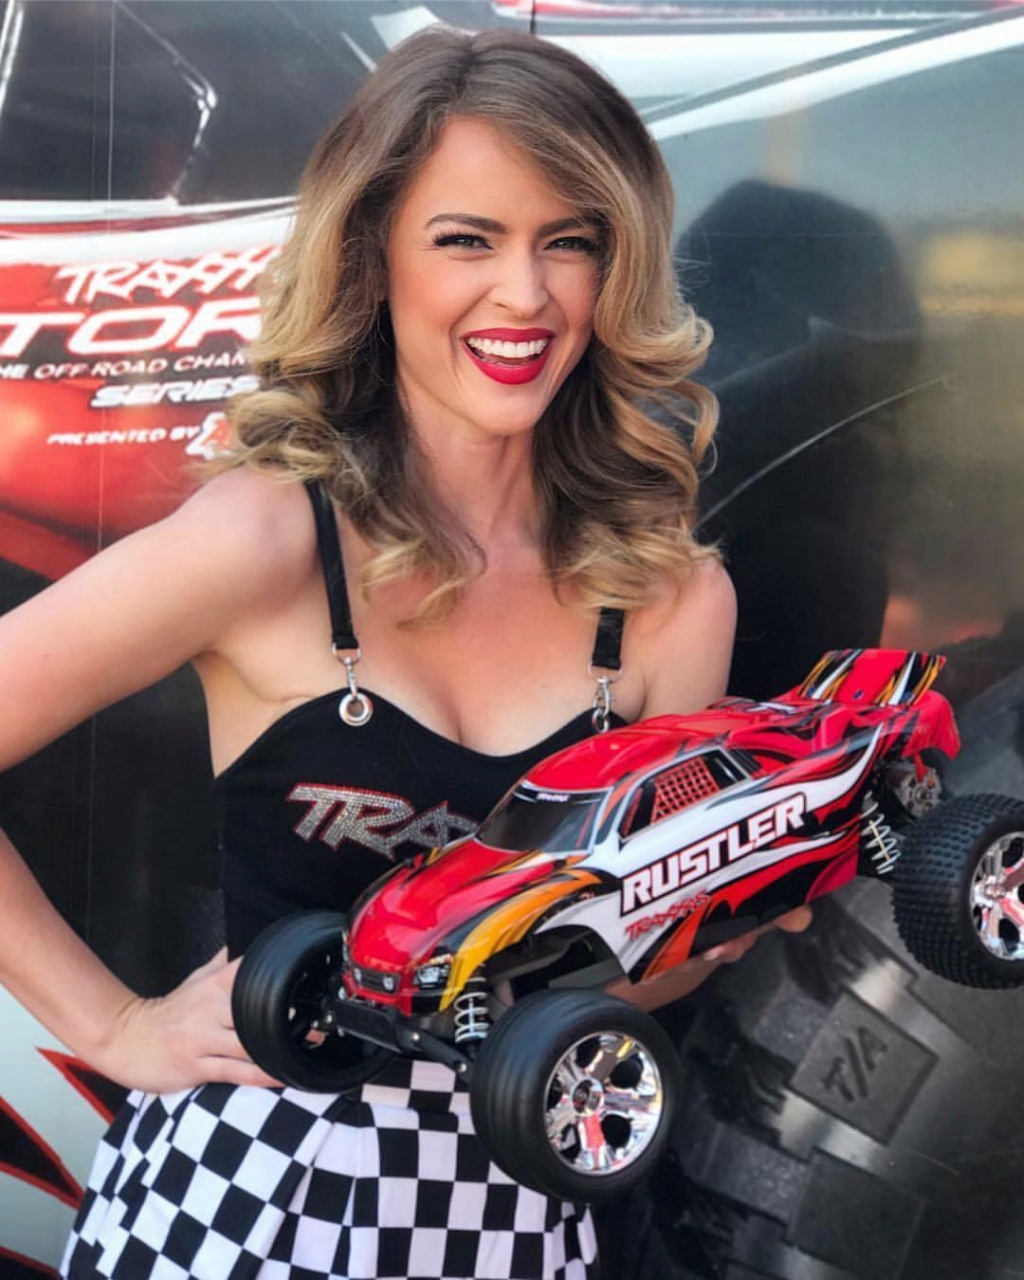 Auto RC-Girls - Page 7 23416611